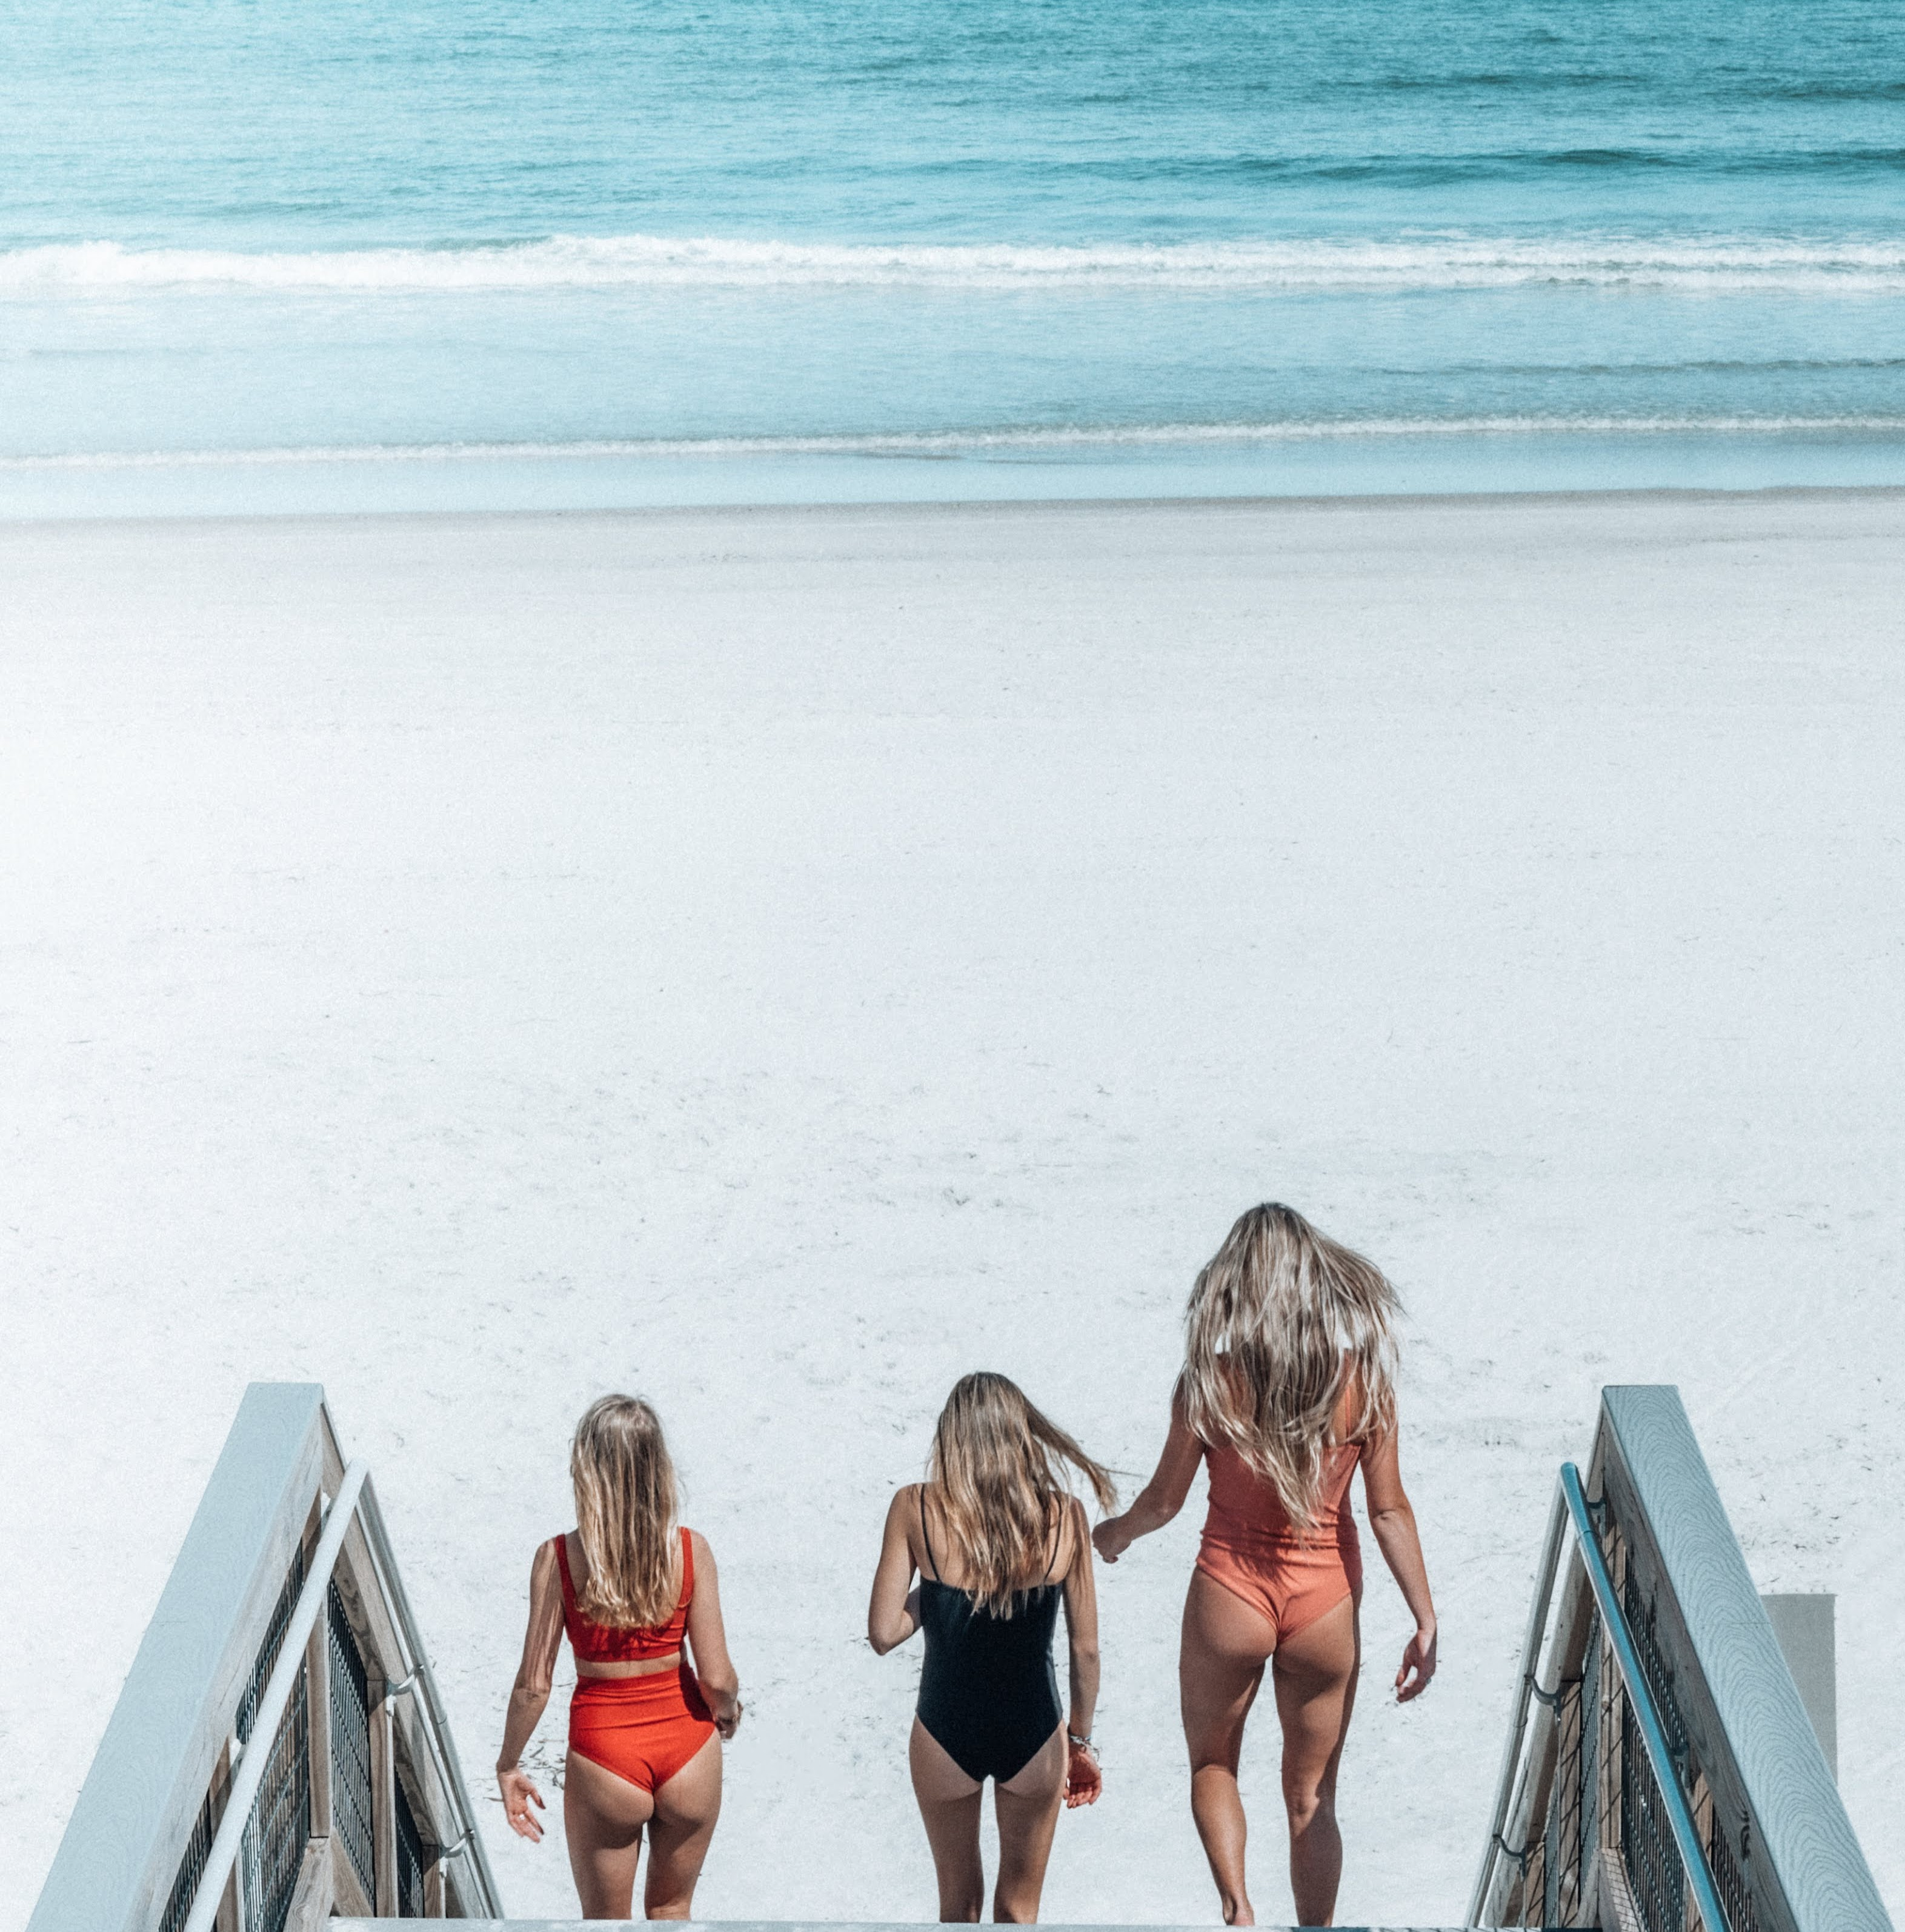 Friends heading out for a surf